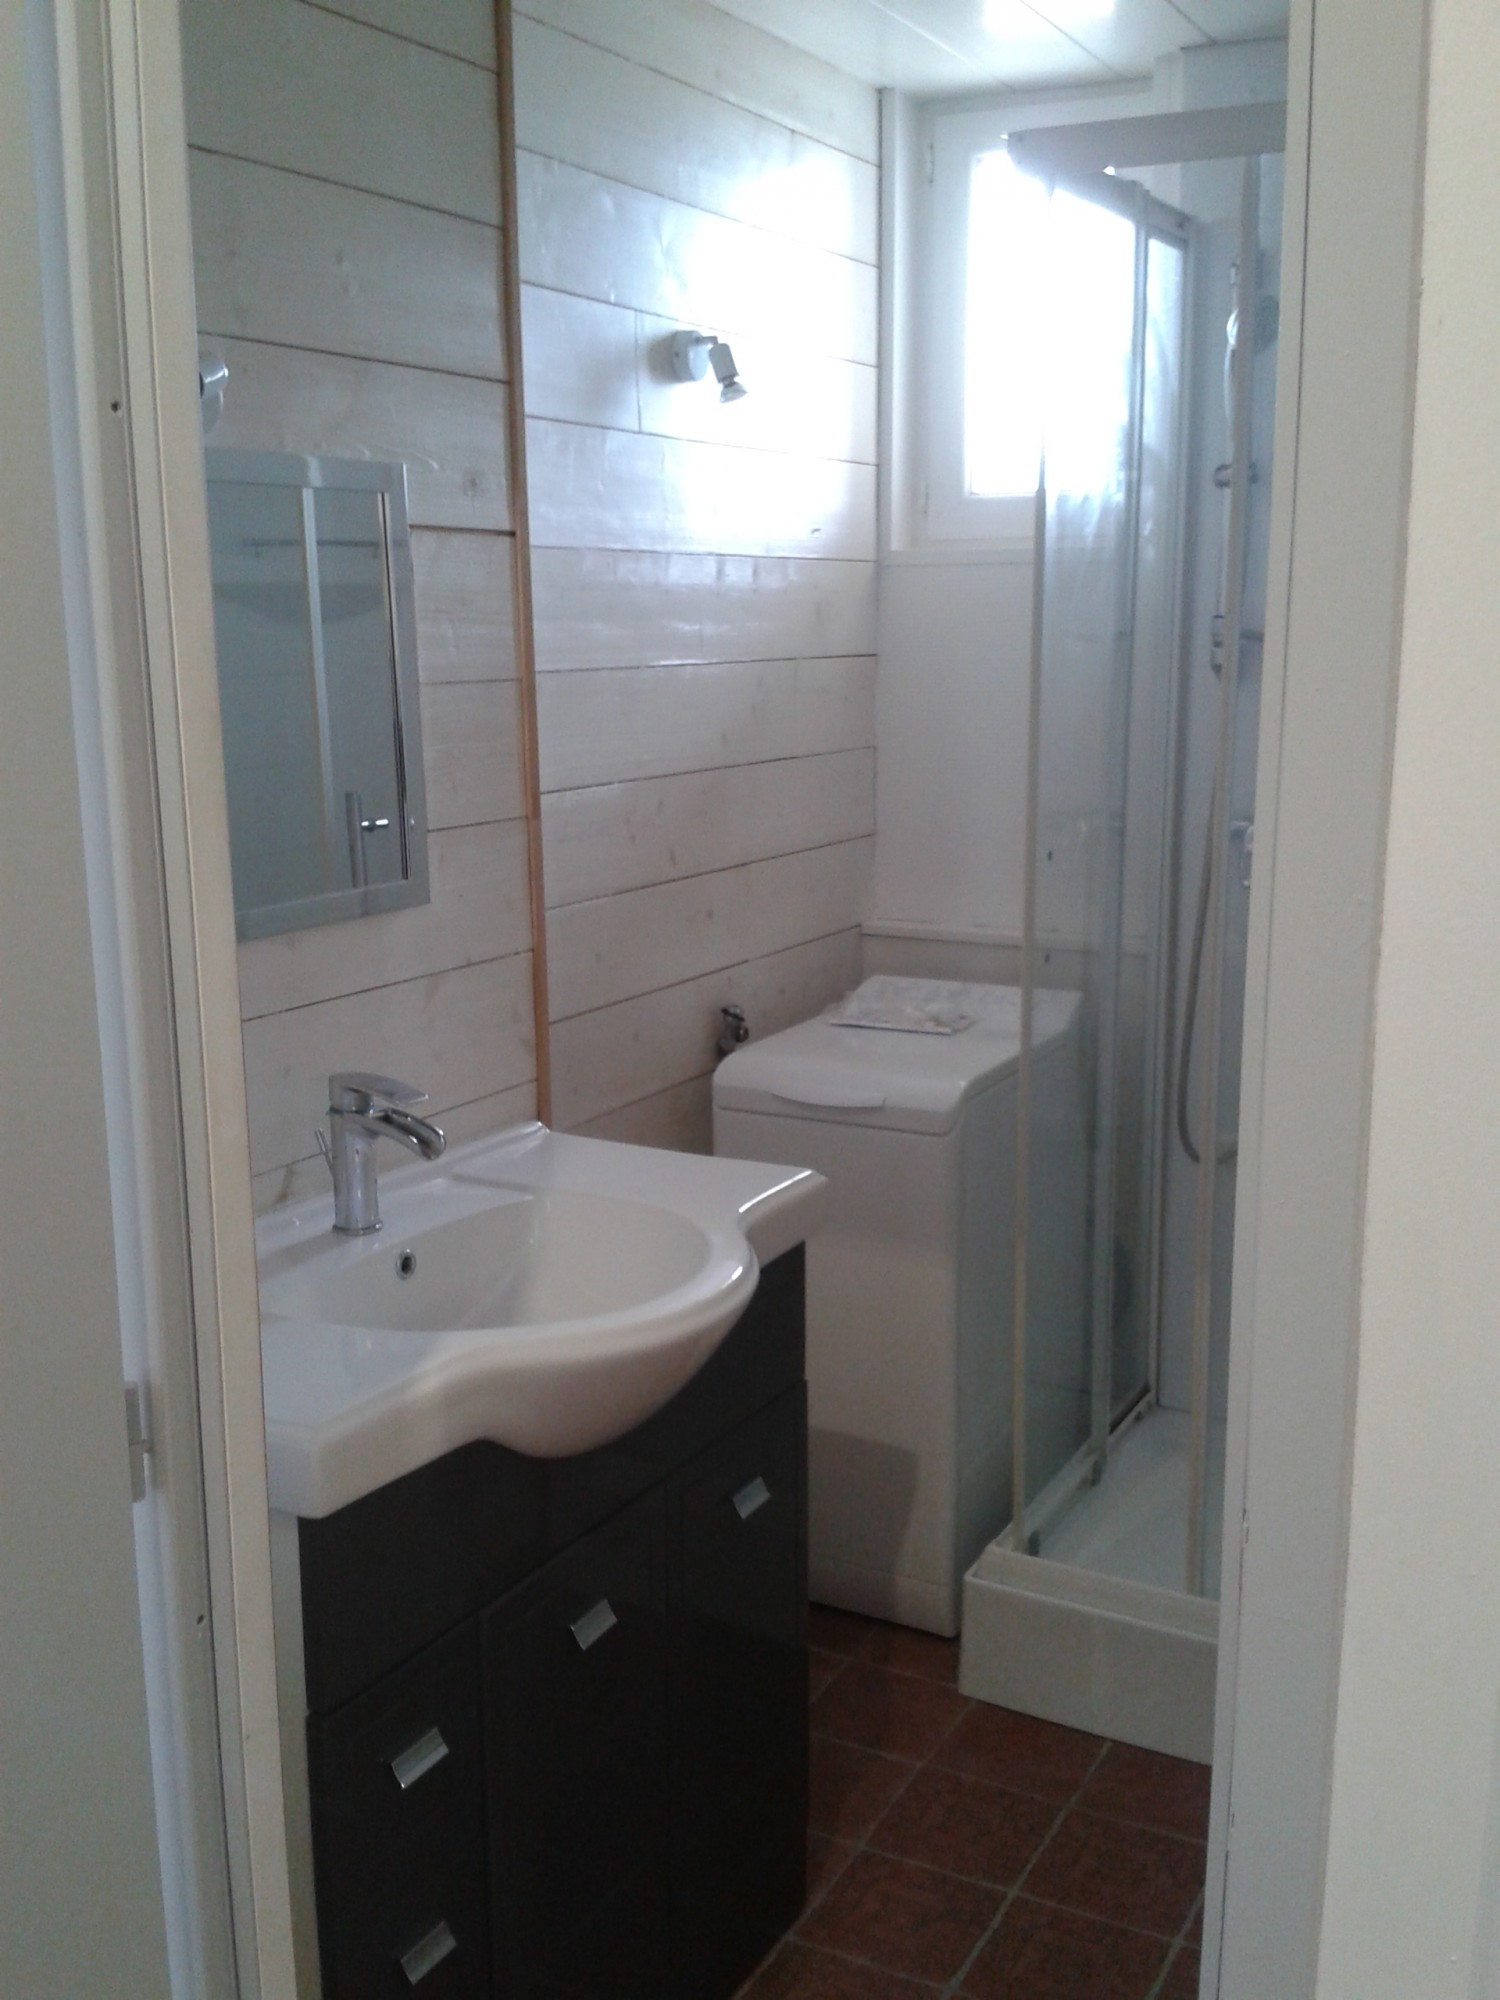 Location Appartement Meubl Ef Bf Bd Valence